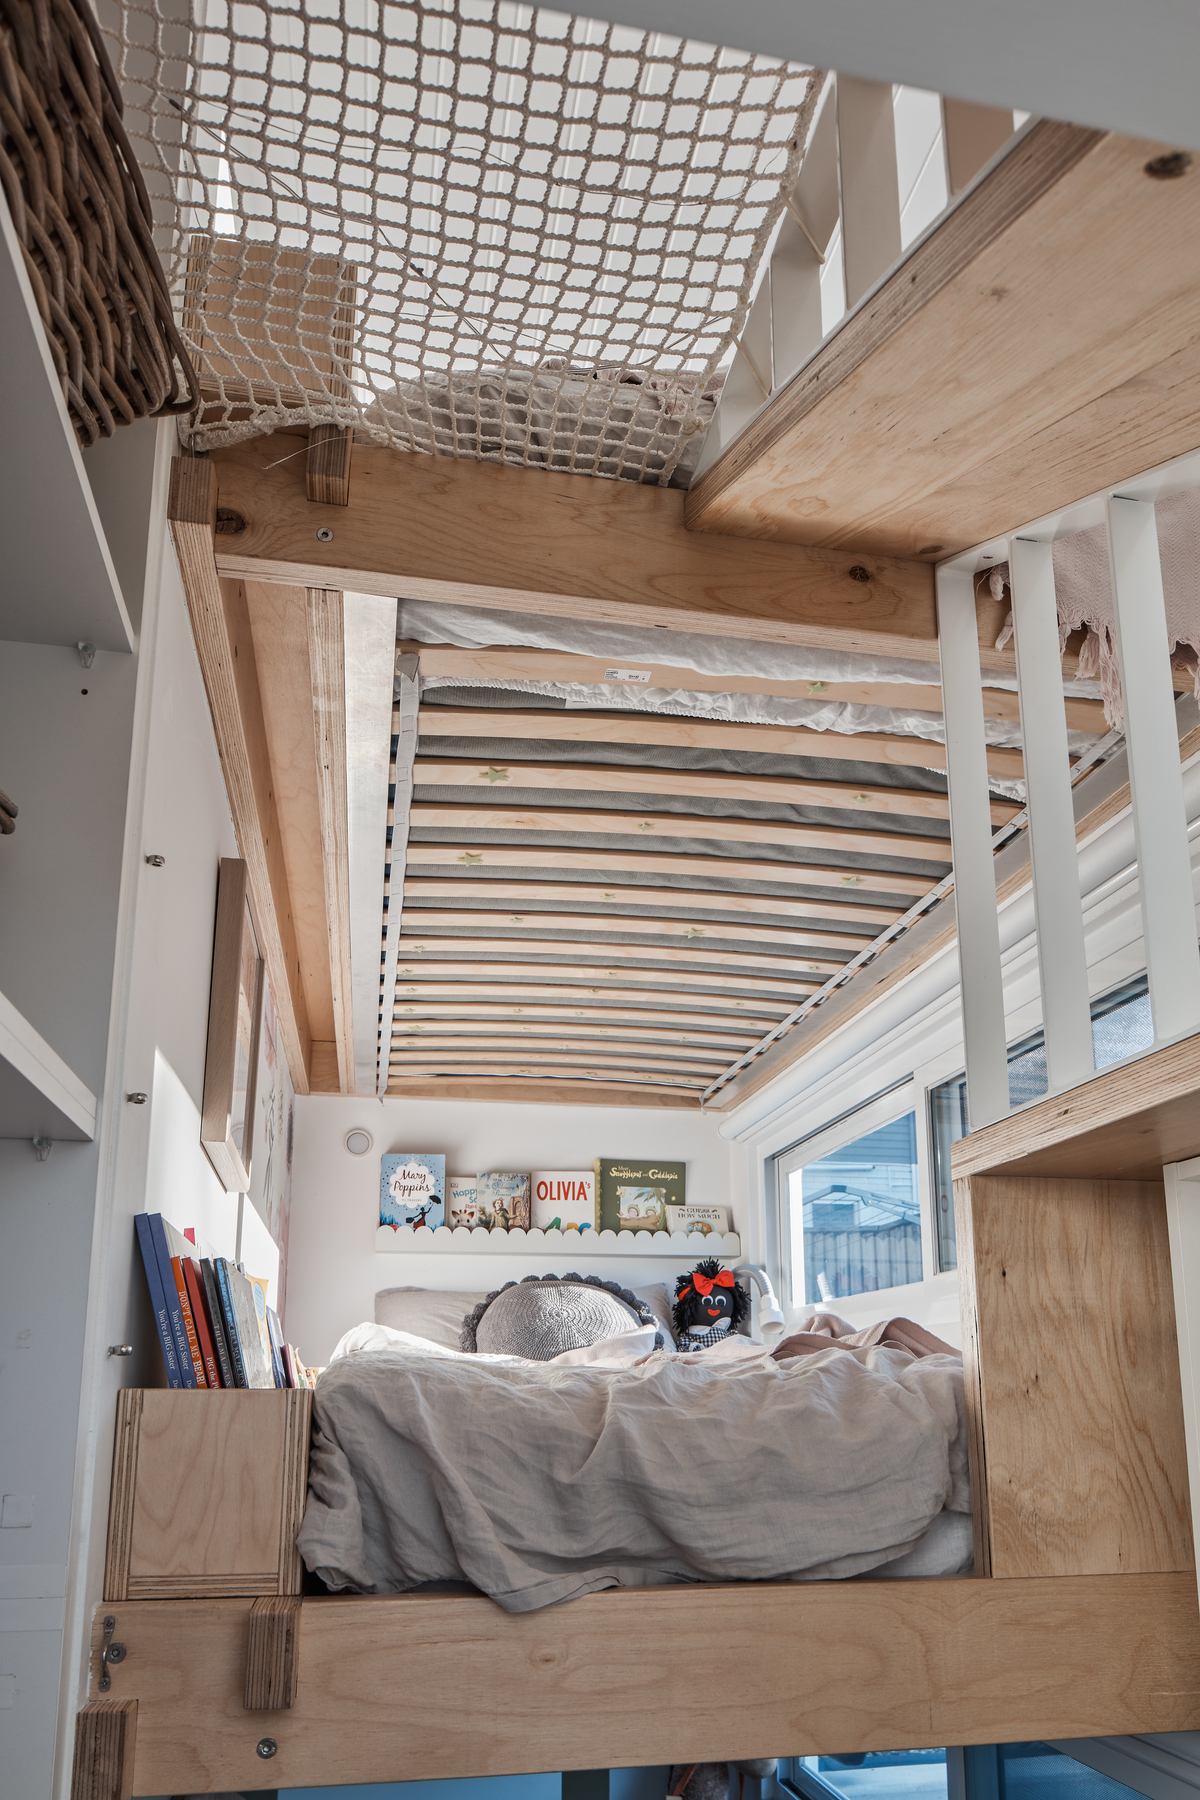 Fitting a Family of Four in 32m²: How Much Space Do You Really Need?